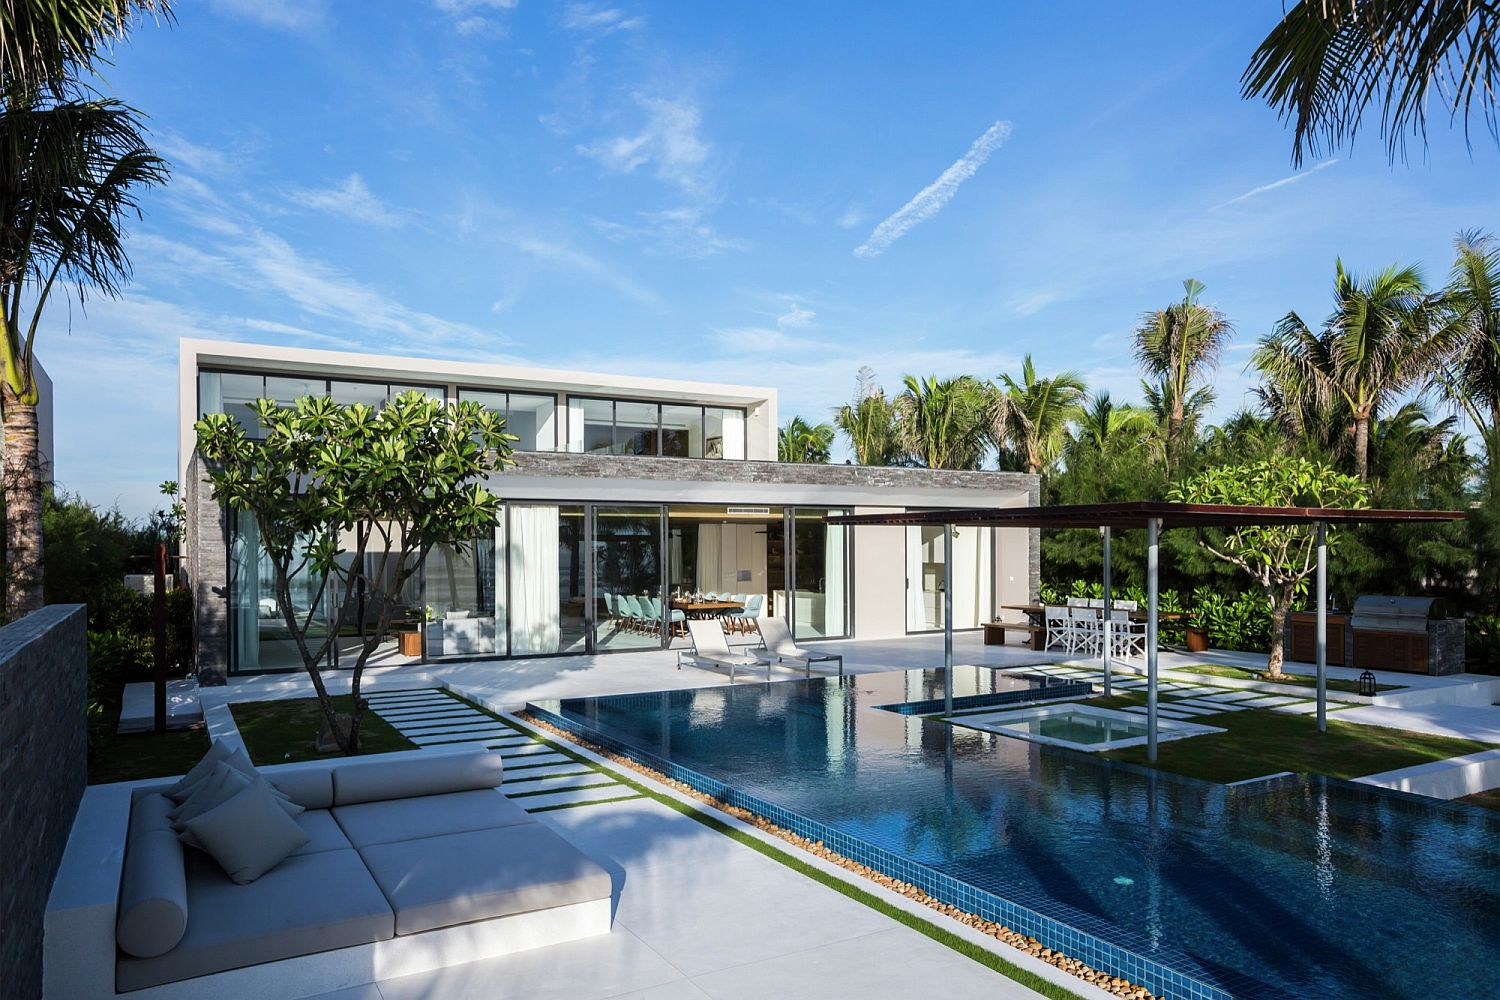 Sweeping decks, outdoor spaces and relaxing pools at the Non Nuoc Beach